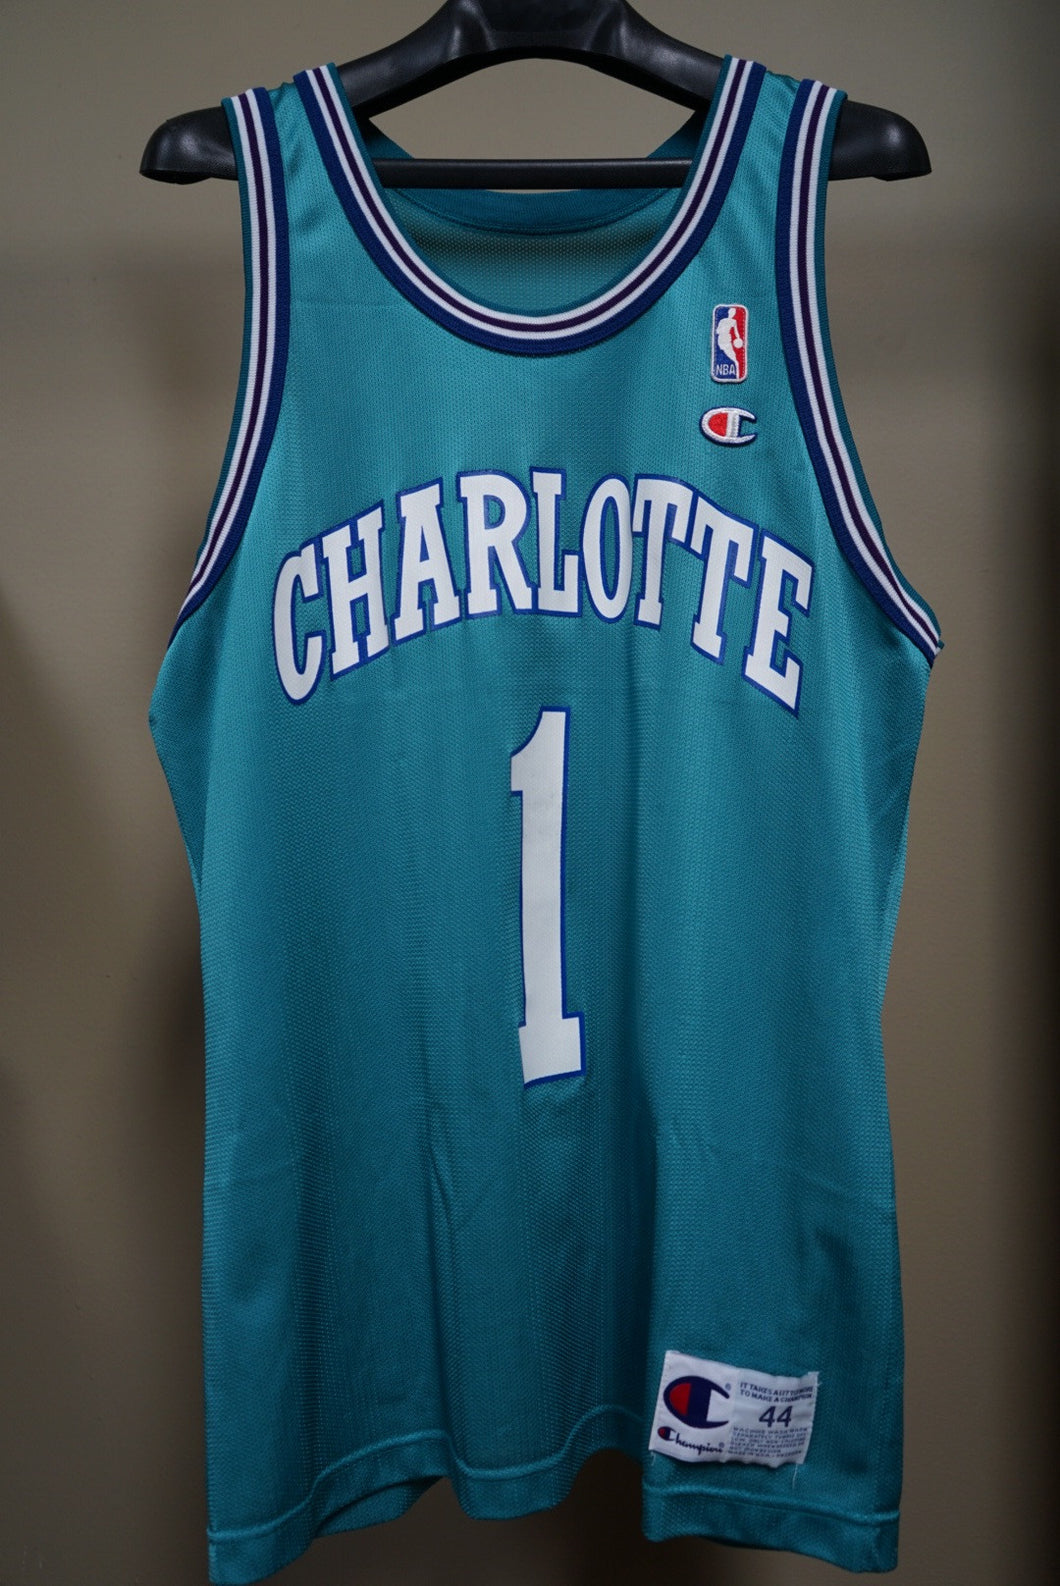 wholesale dealer f5190 89c2a Muggsy Bogues vintage champion Jersey – Tacod